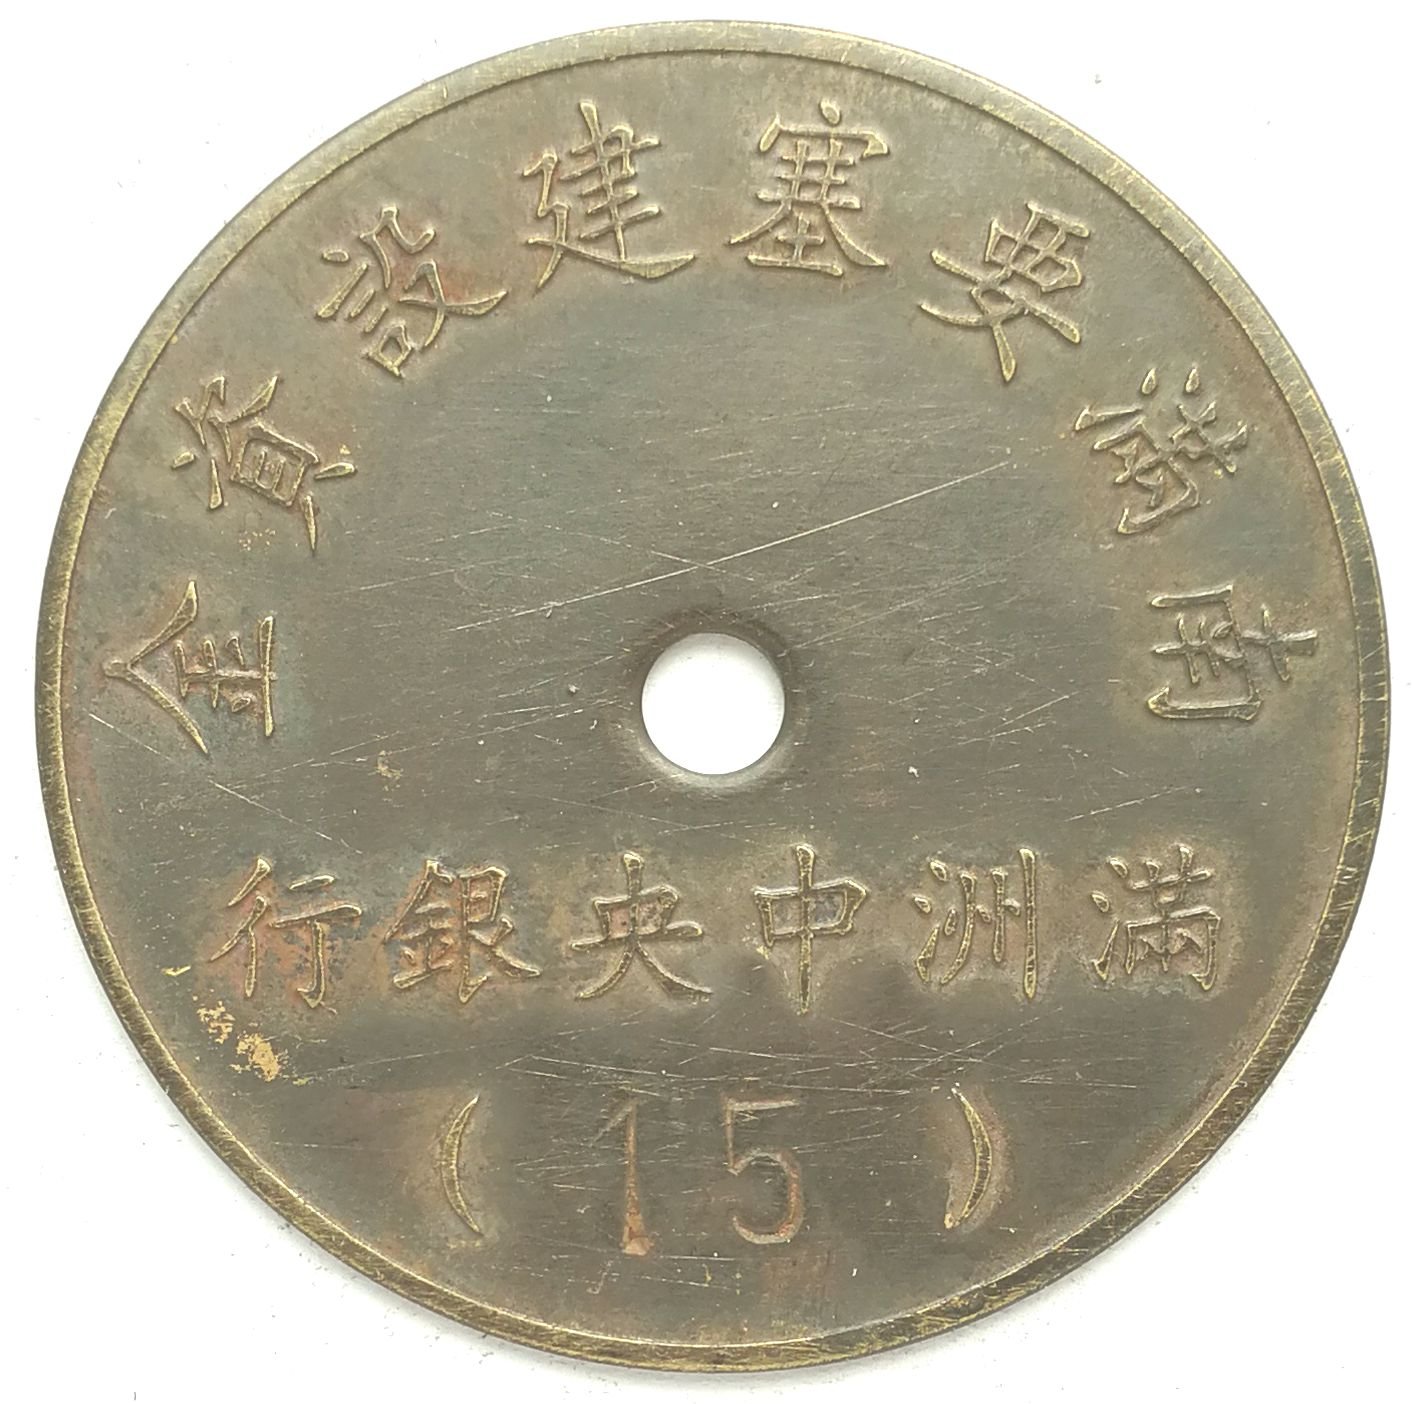 BT541, South Manchukuo Fortresses Construction Fund, 15 Yen Token, 1944